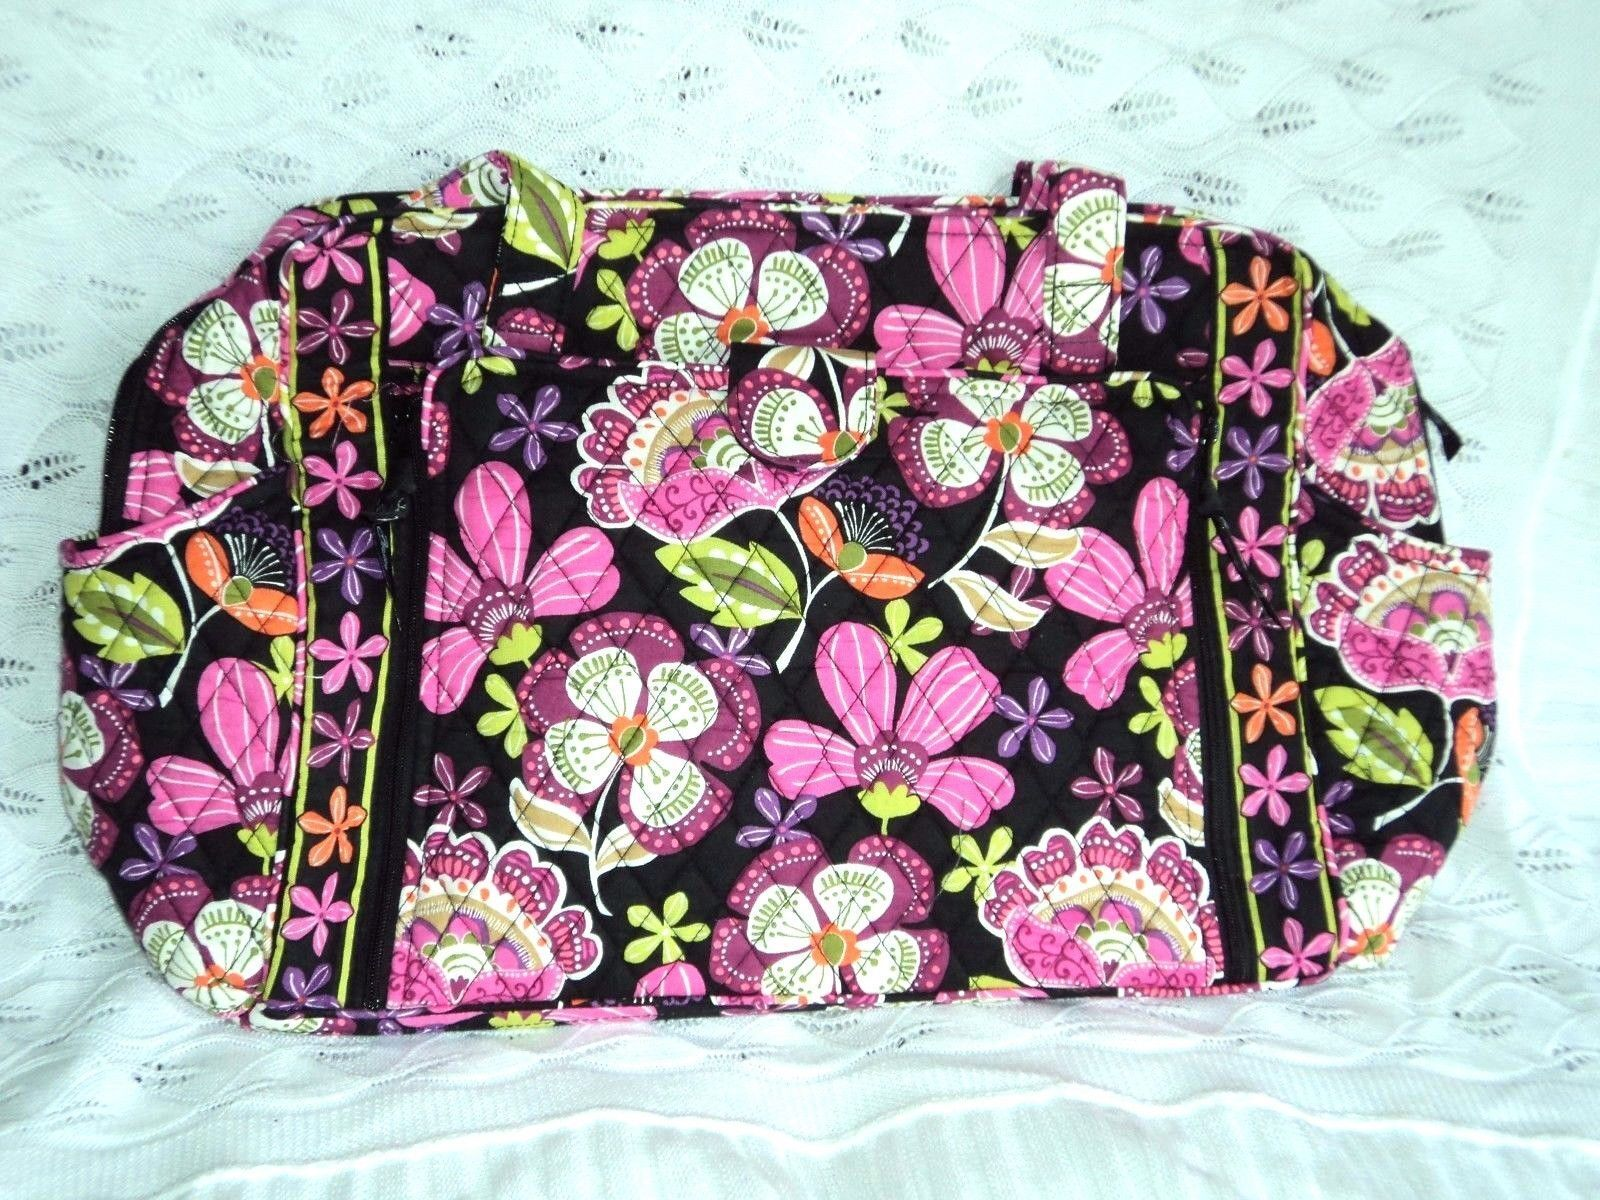 Vera Bradley Make a Change Baby Bag in Pirouette Pink Cotton Floral ... 7eef59c335023